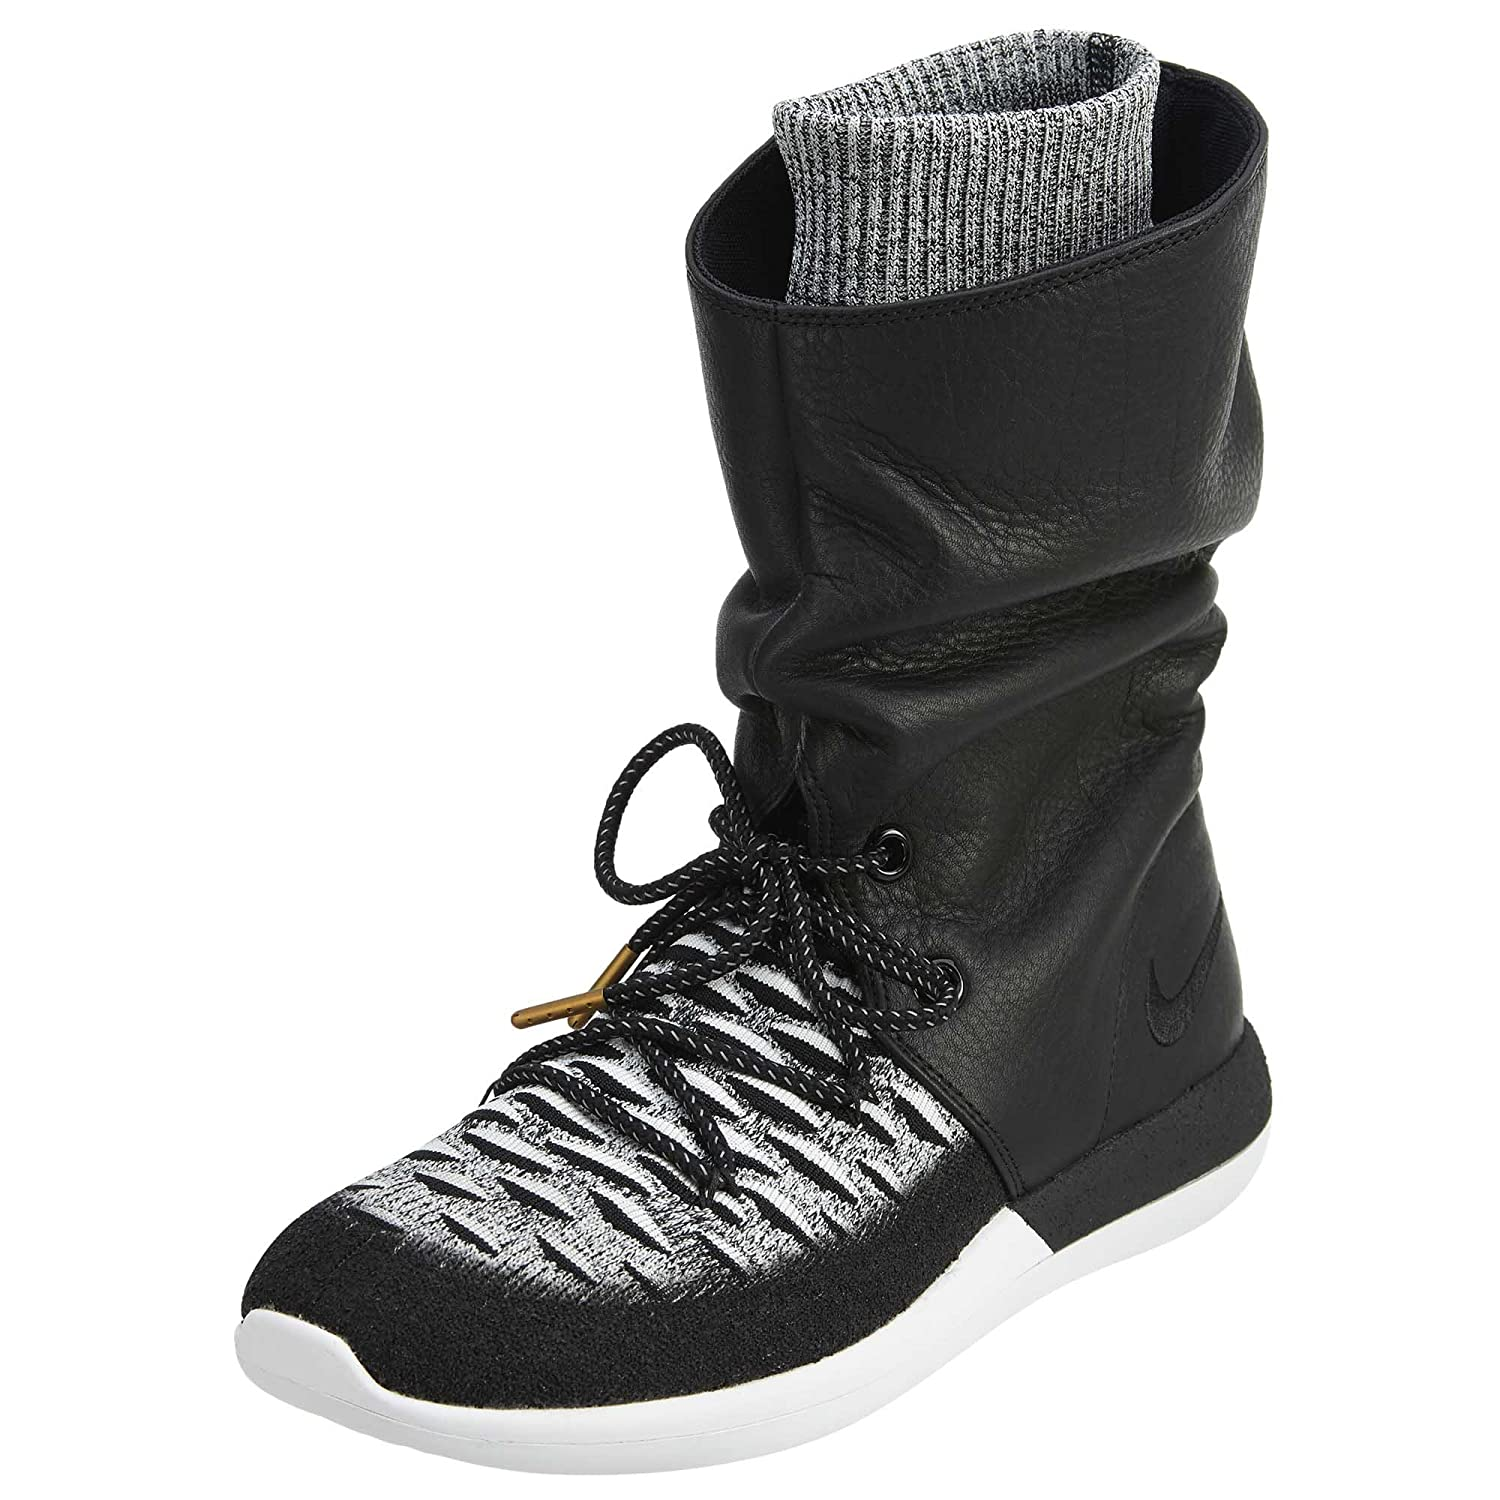 NIKE Womens Roshe Two Hi Flyknit Trainers 861708 Sneakers Boots B01M8HUYQW 5 B(M) US|Black/Black-white